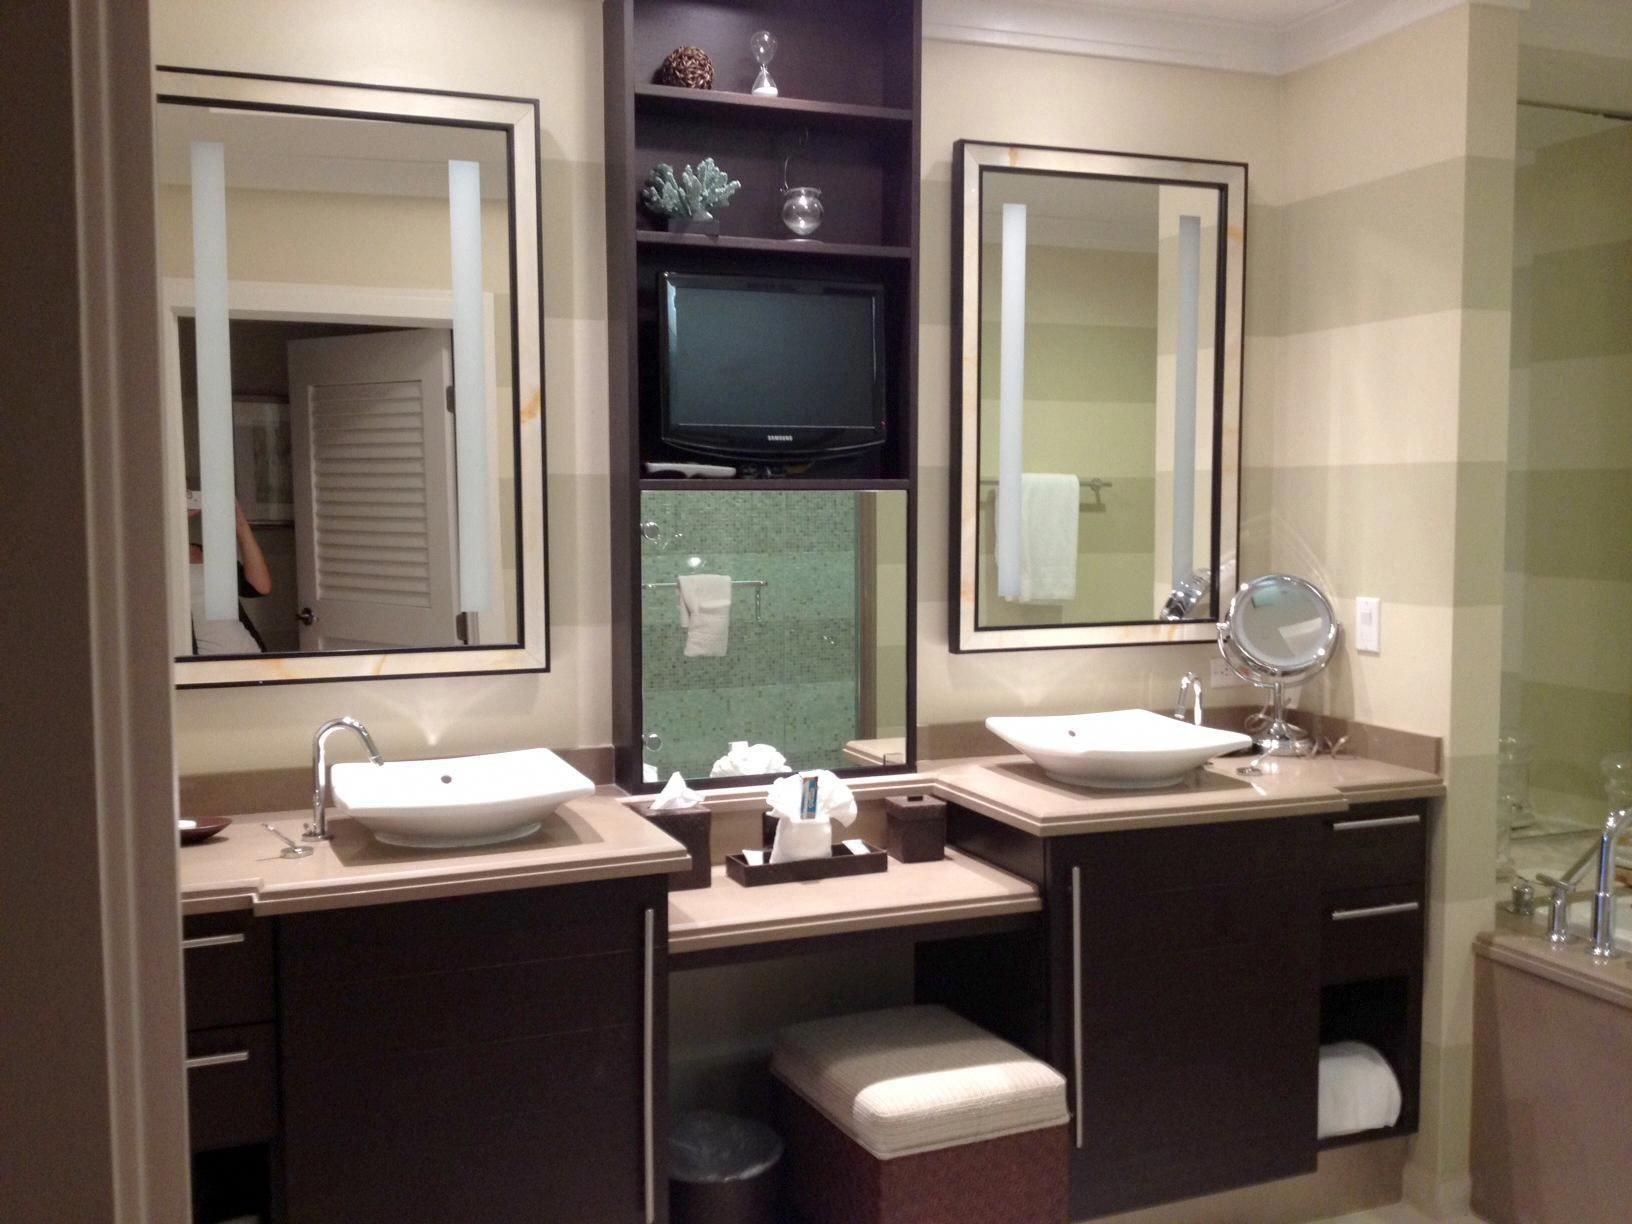 72 Bathroom Vanities With Makeup Area Do You Have Any Pieces